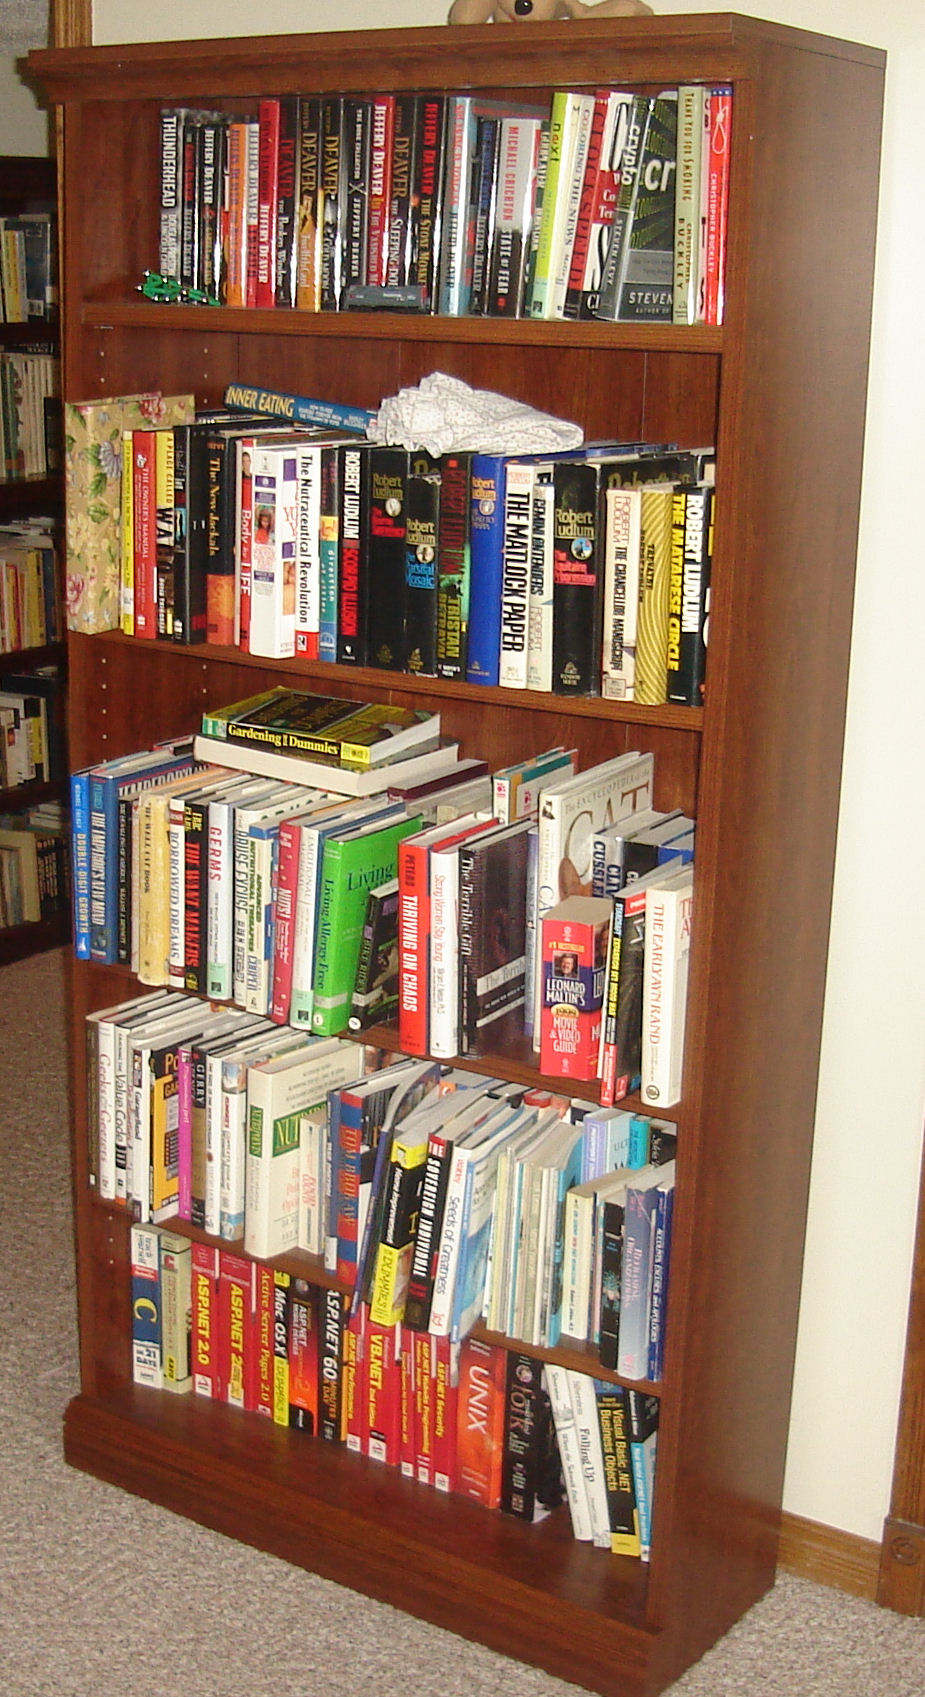 Heather's fourth bookshelf